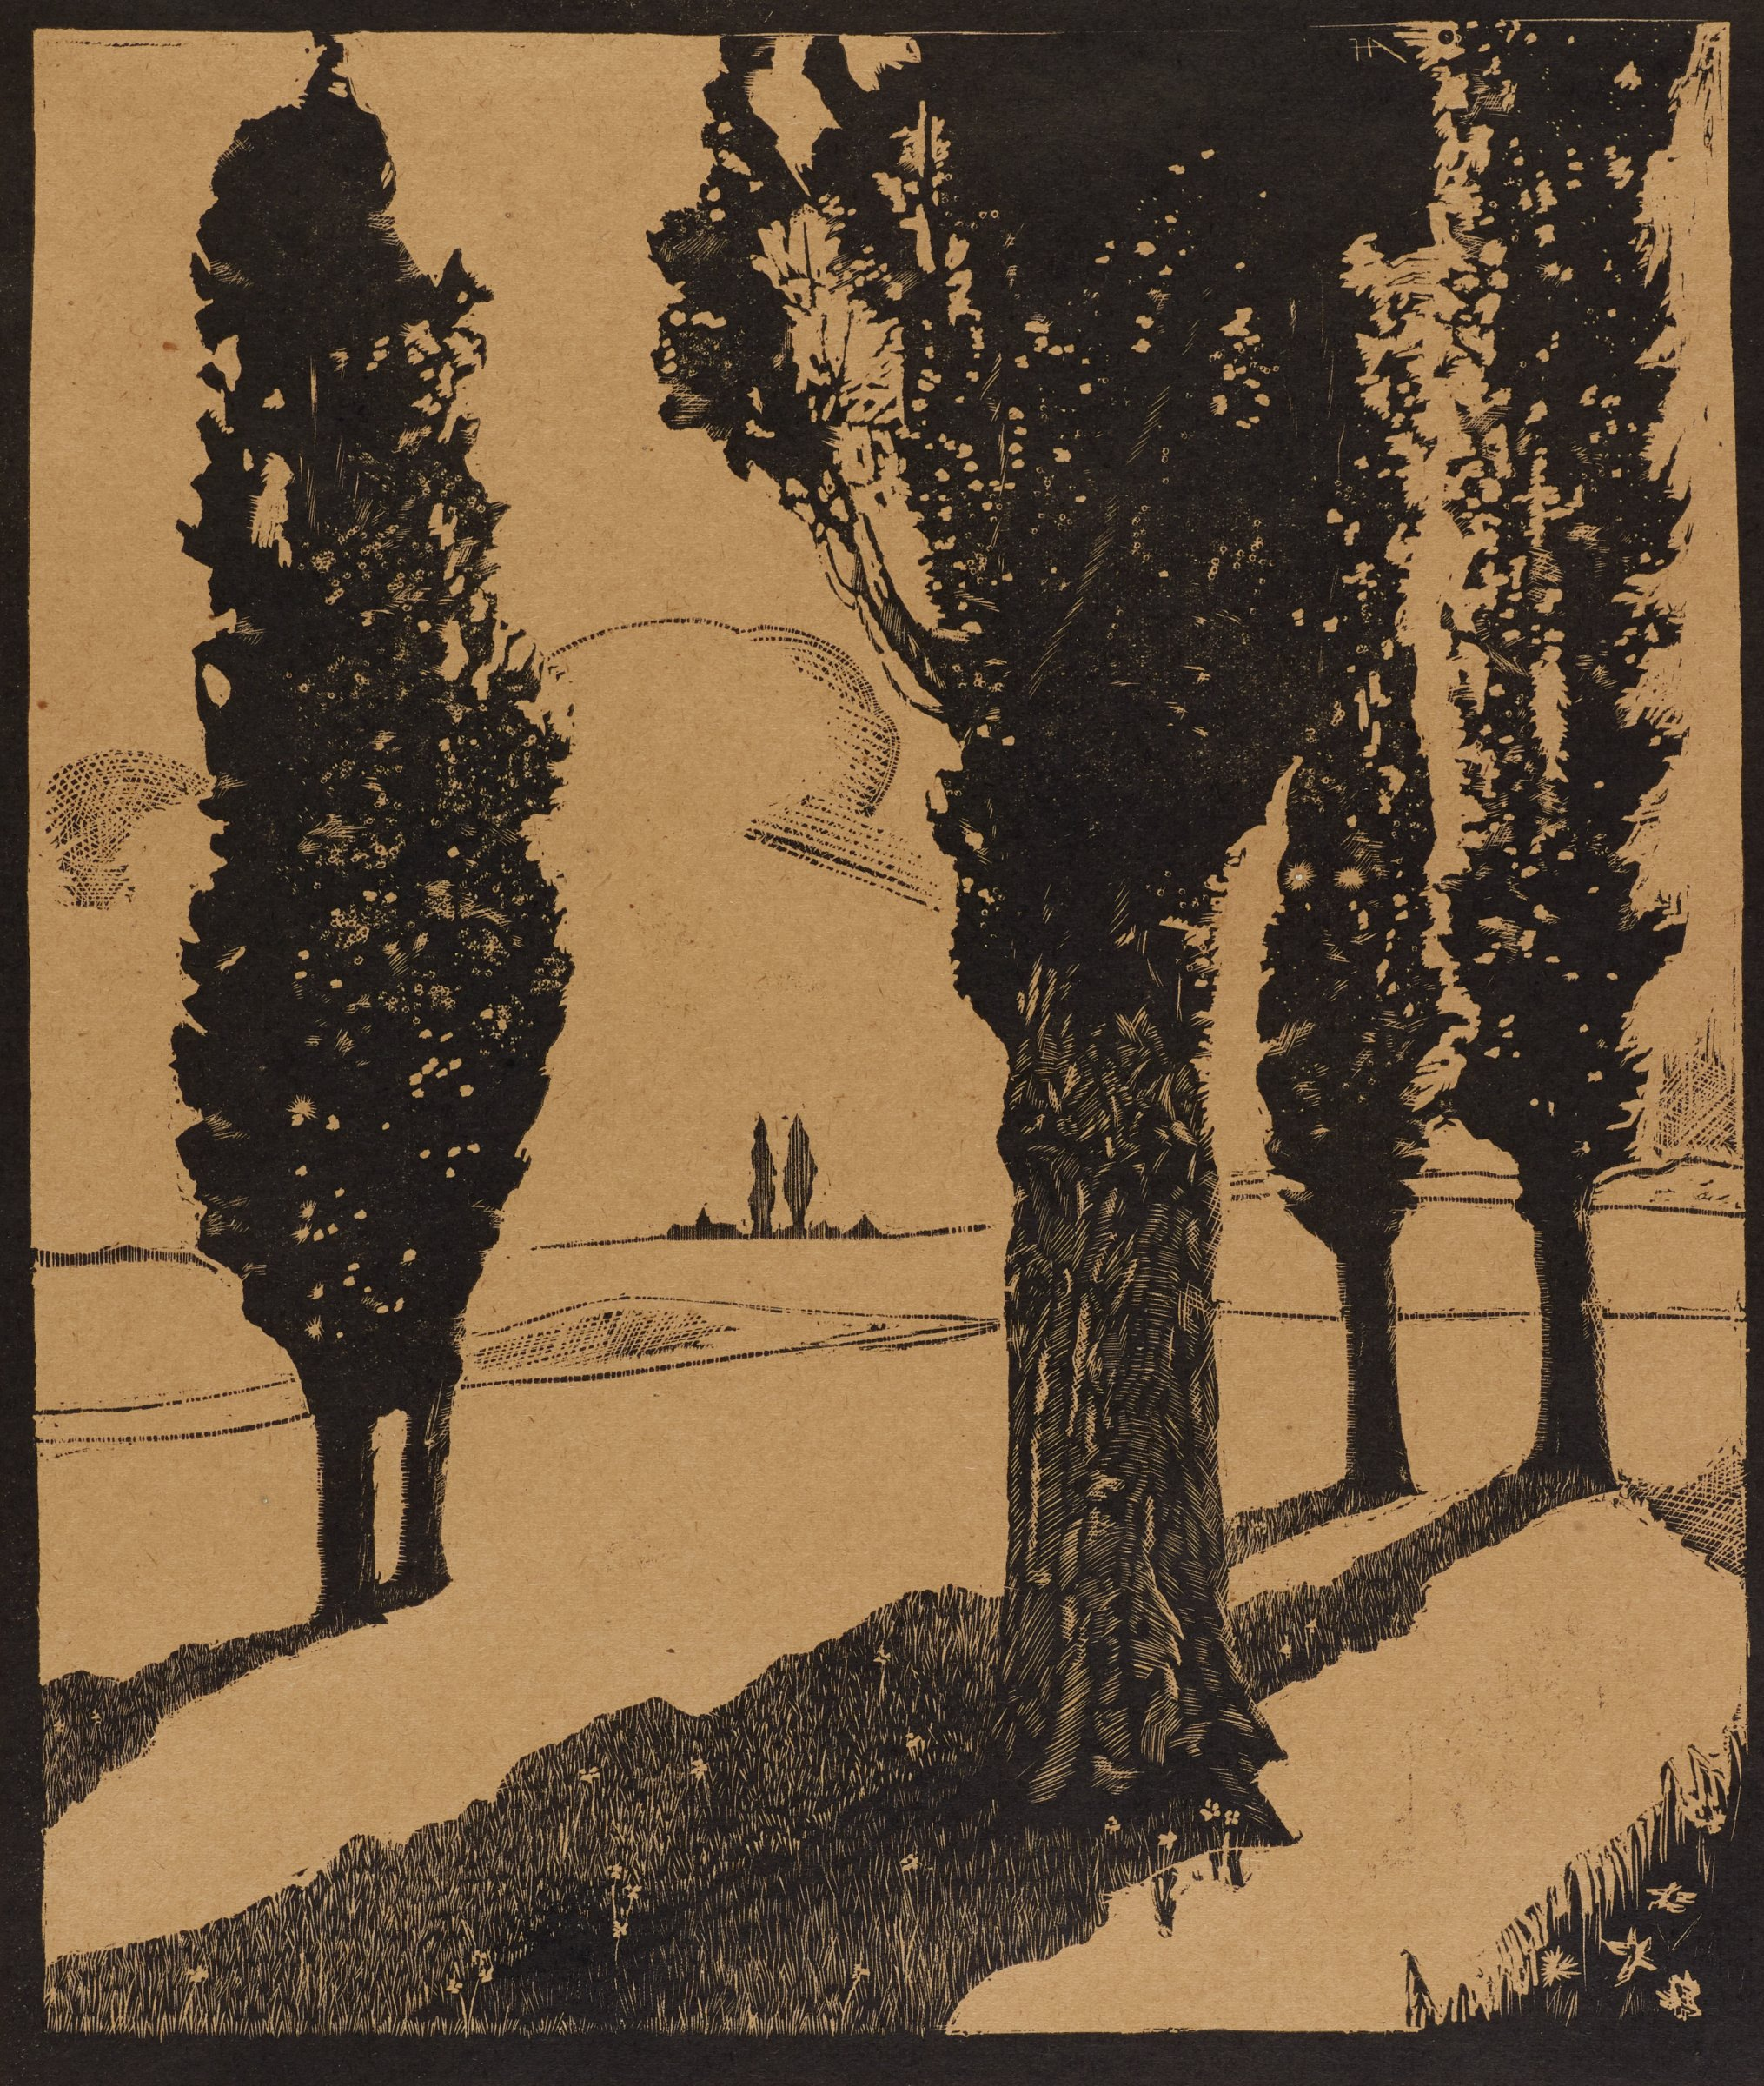 A stand of four trees, all of which cast long shadows; one tree in the foreground, the other three in the background.